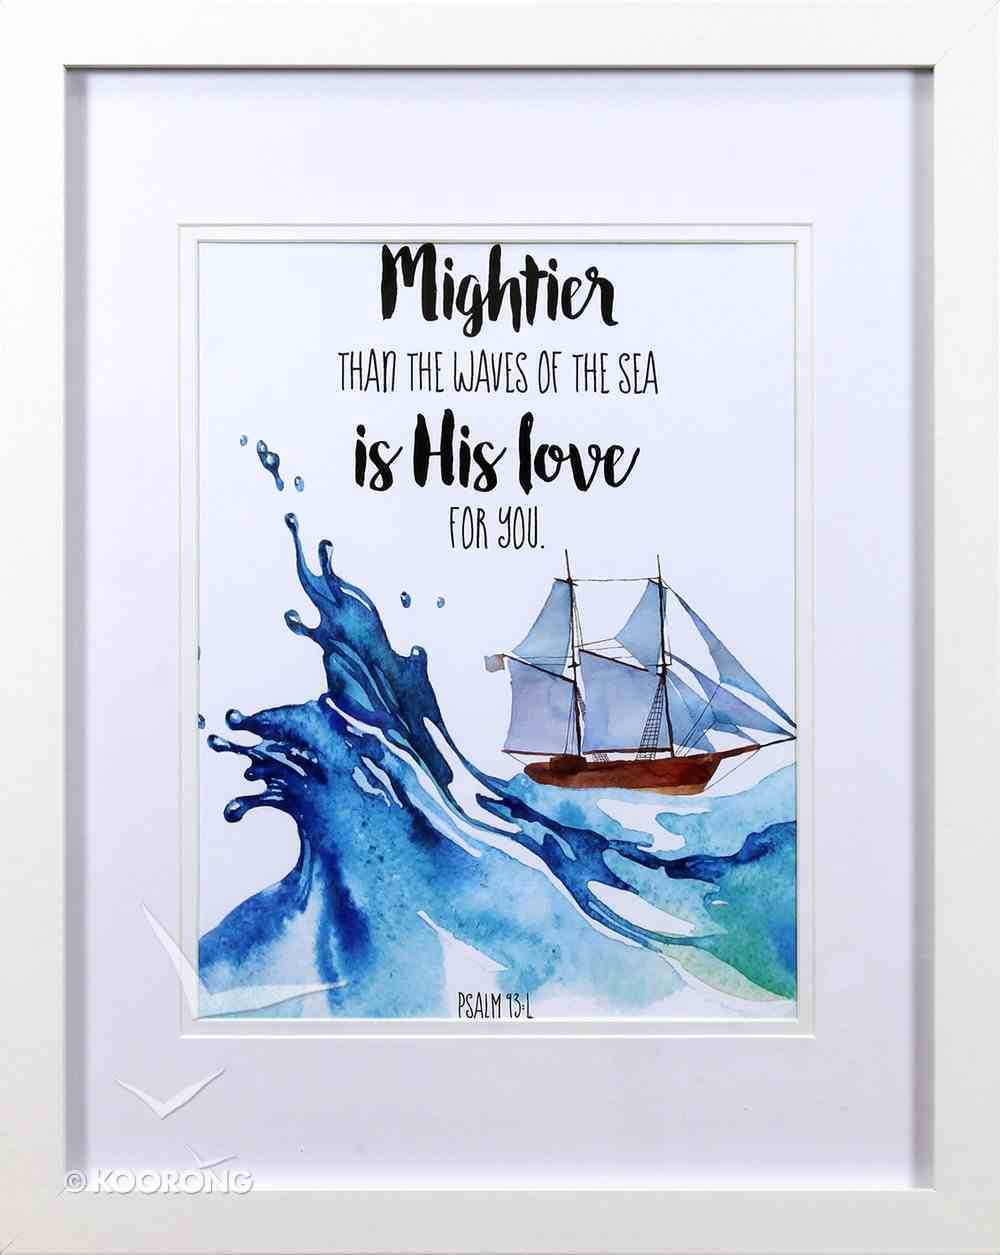 Framed Children's Print Watercolour Ship Mightier Than the Waves (Psalm 93: 4) Plaque